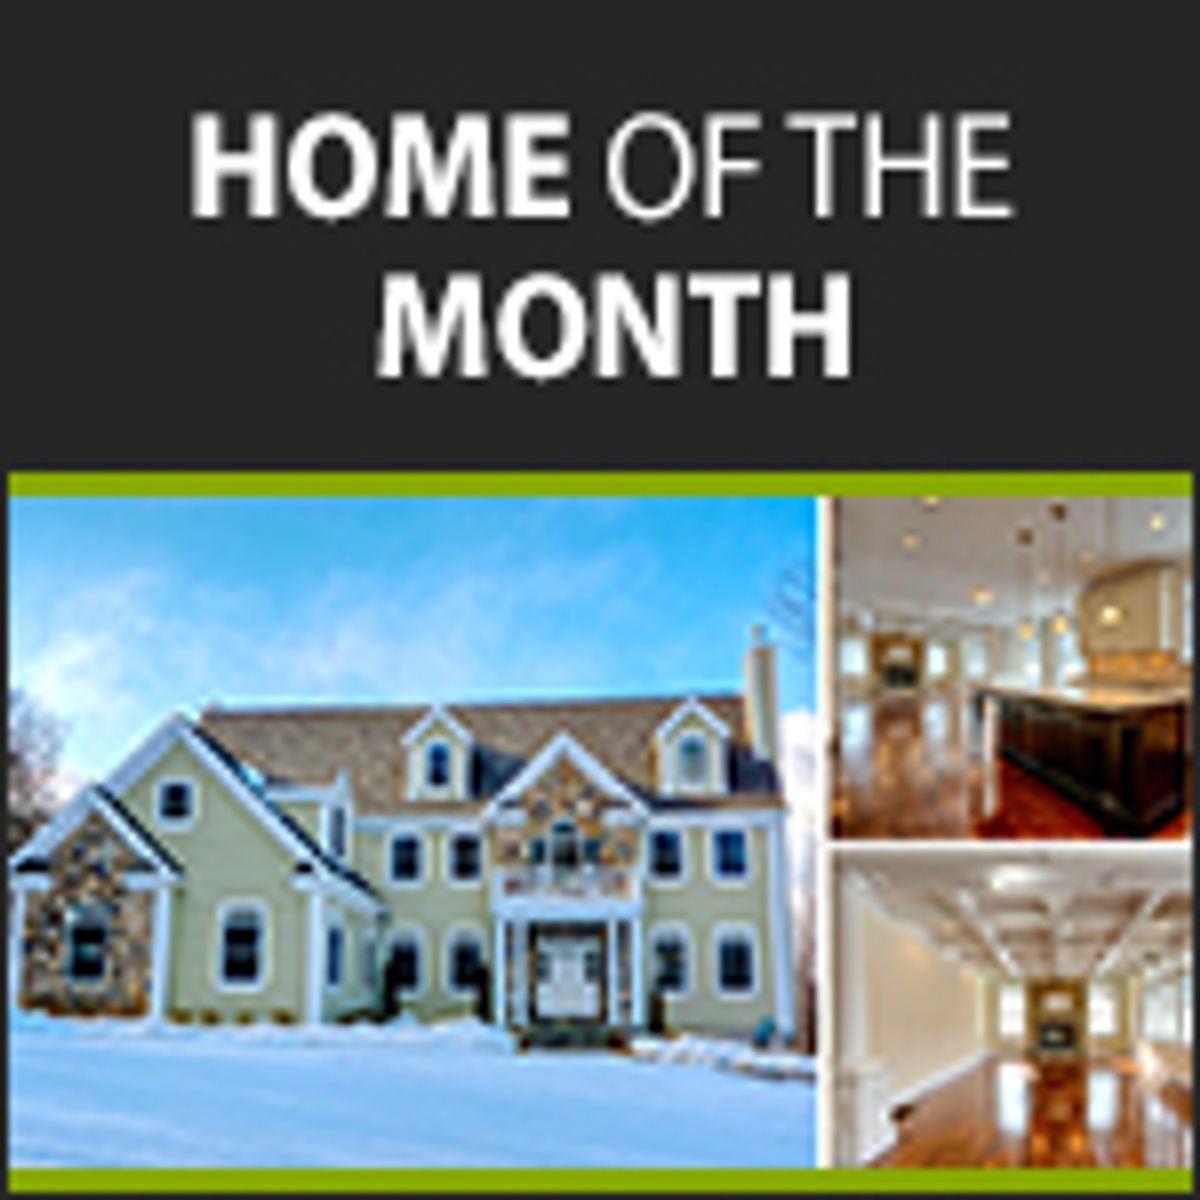 June Home of the Month Awarded